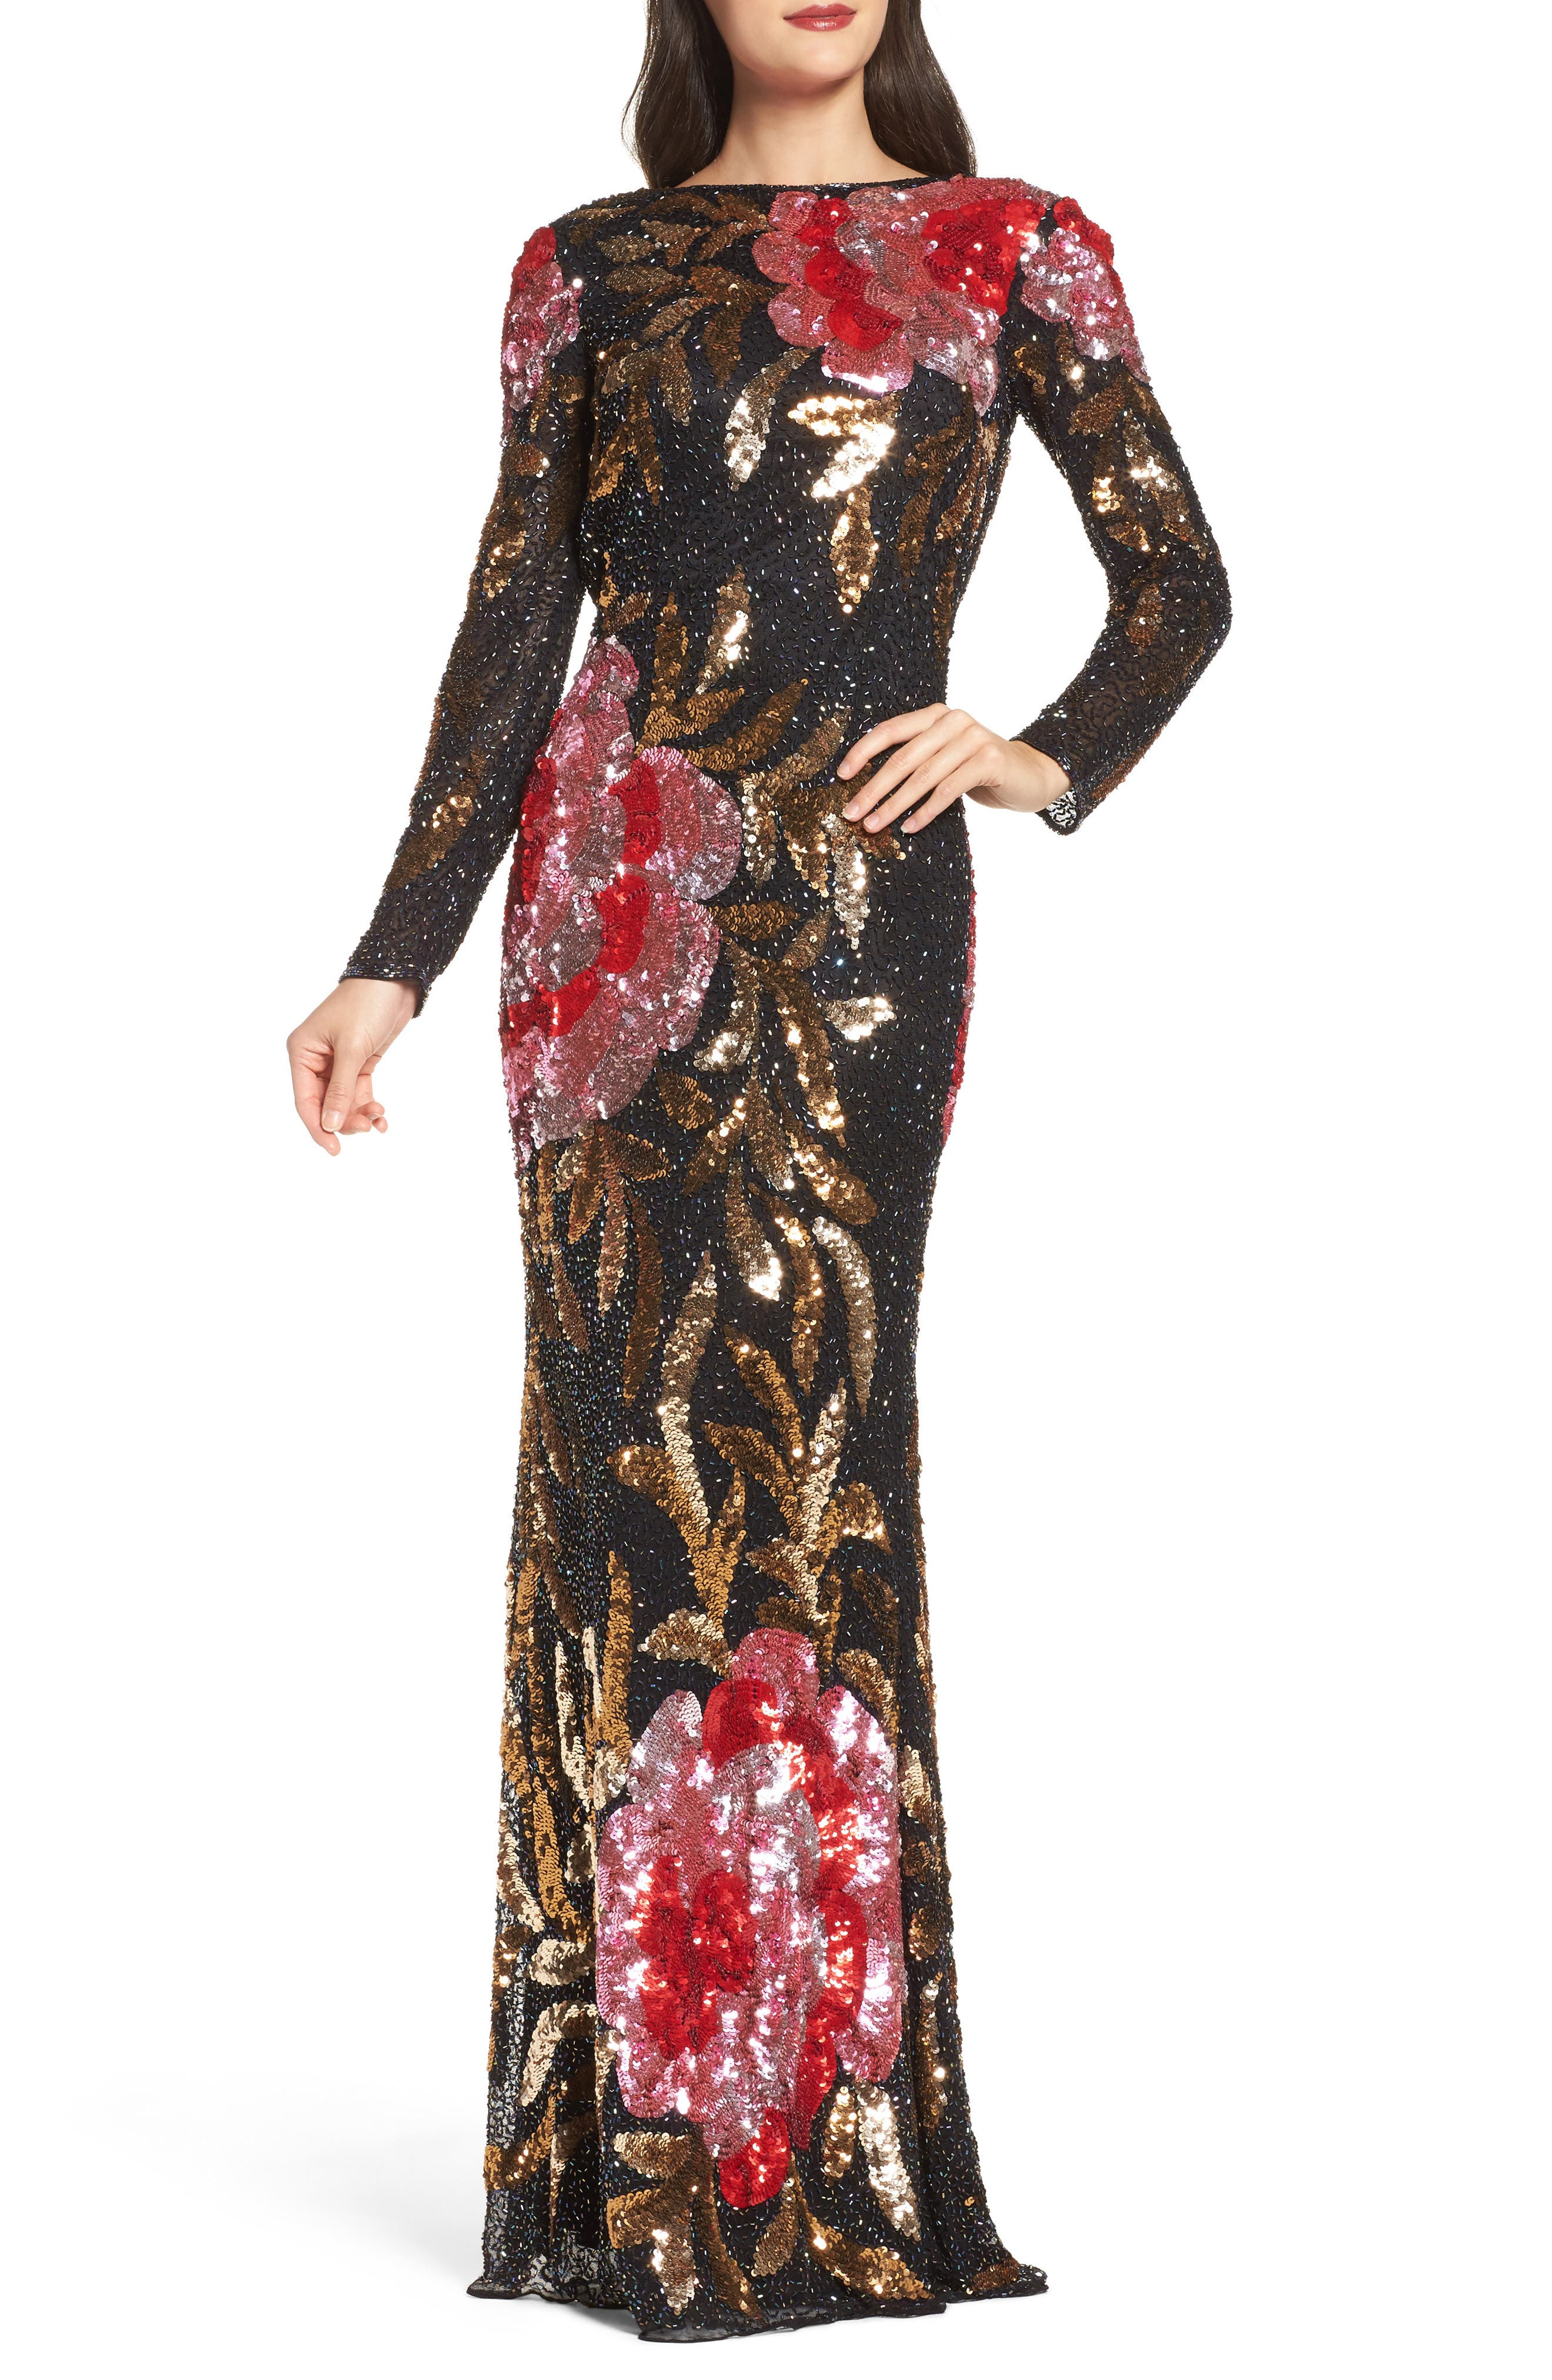 MAC DUGGAL, Drape Back Floral Sequin Gown, Main thumbnail 1, color, BLACK/ RED MULTI